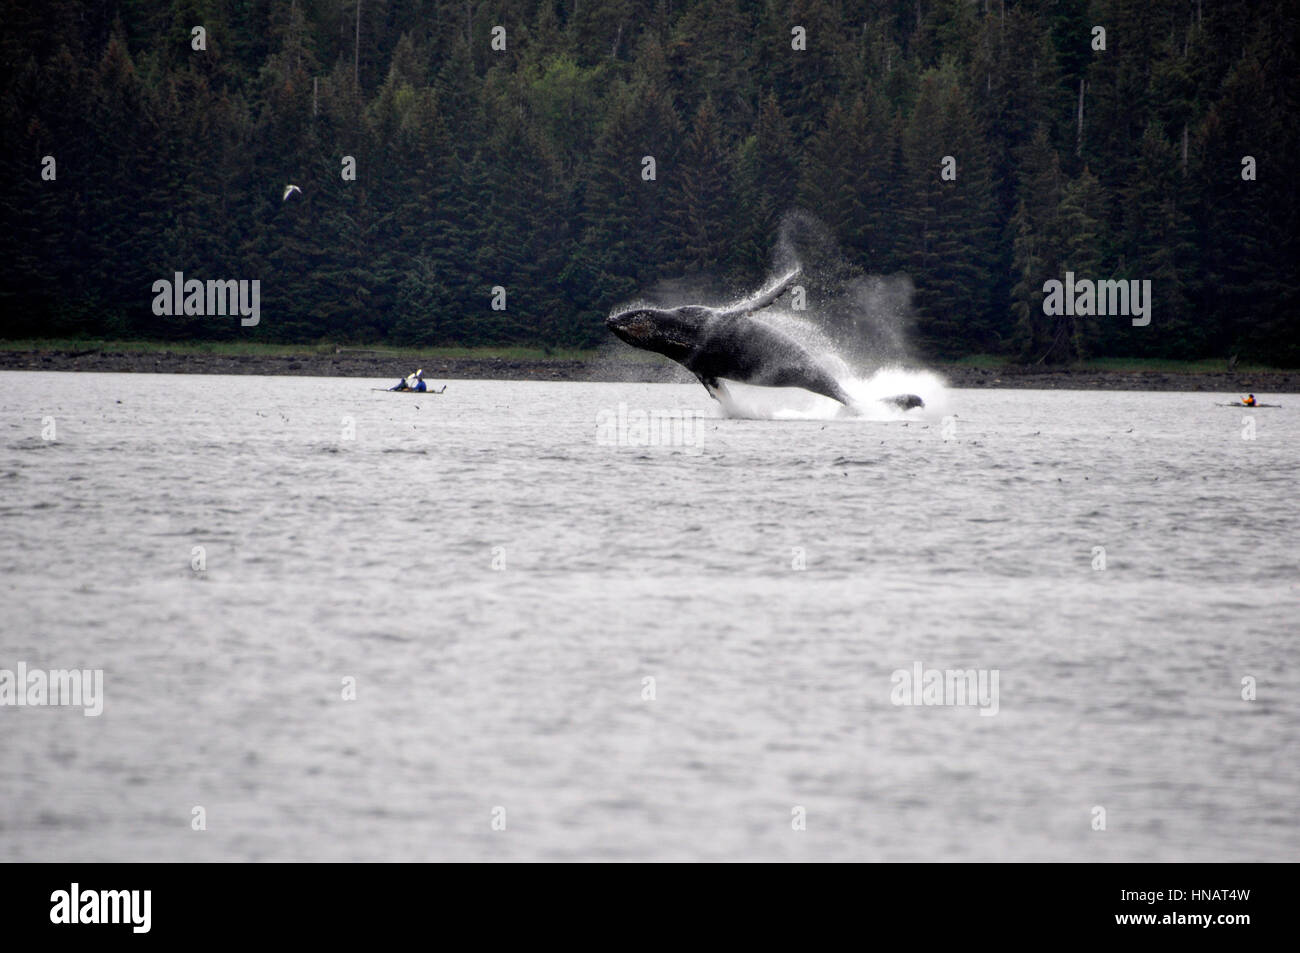 A whale jumping between two canoes on Glacier Bay in Alaska - Stock Image